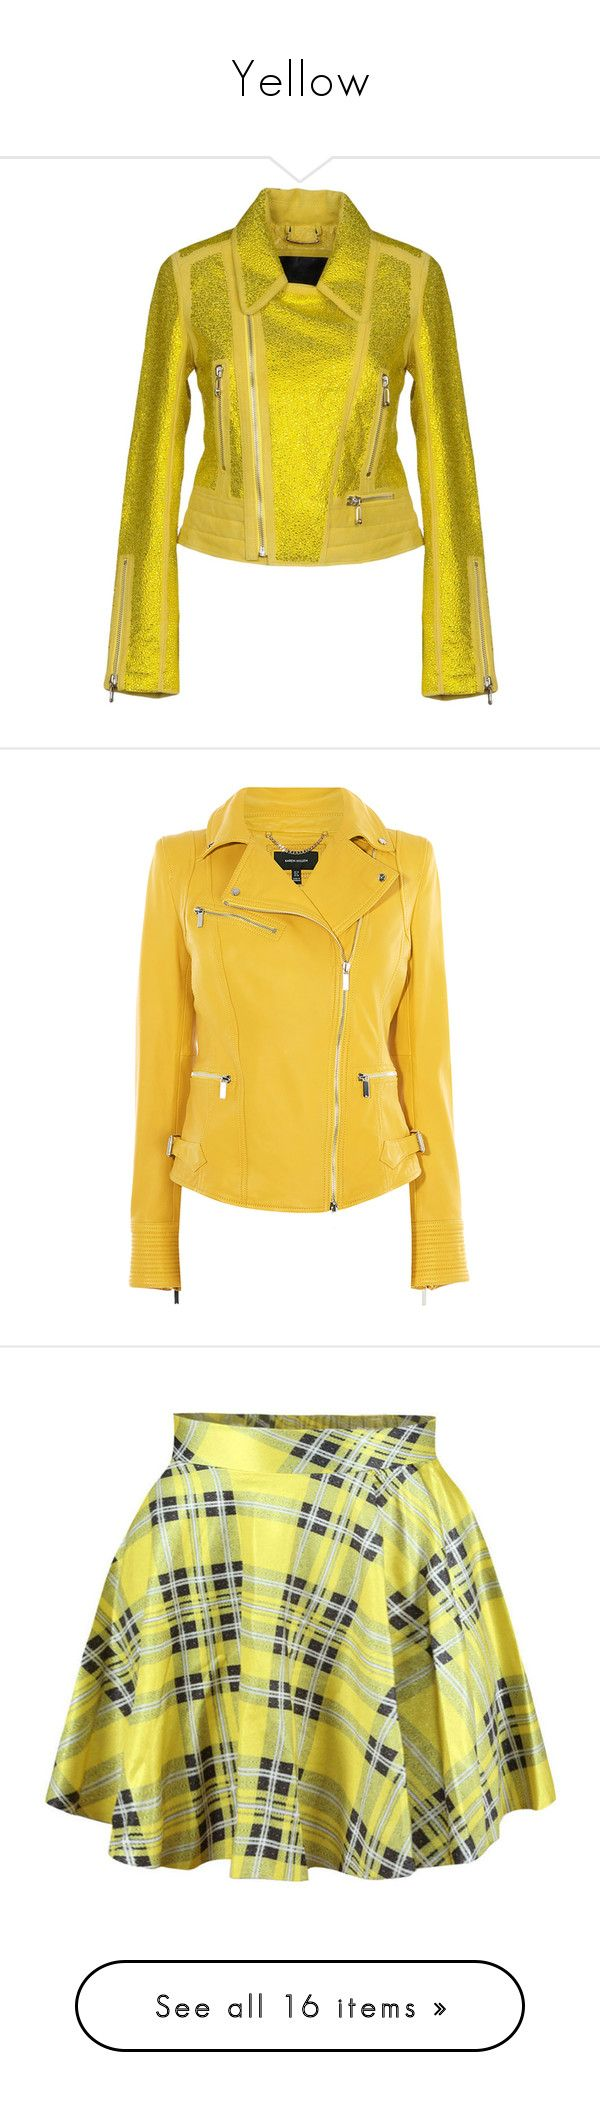 """Yellow"" by random1thing ❤ liked on Polyvore featuring outerwear, jackets, yellow, philipp plein jacket, philipp plein, biker jackets, zip jacket, animal jackets, moto jacket and zip pocket jacket"